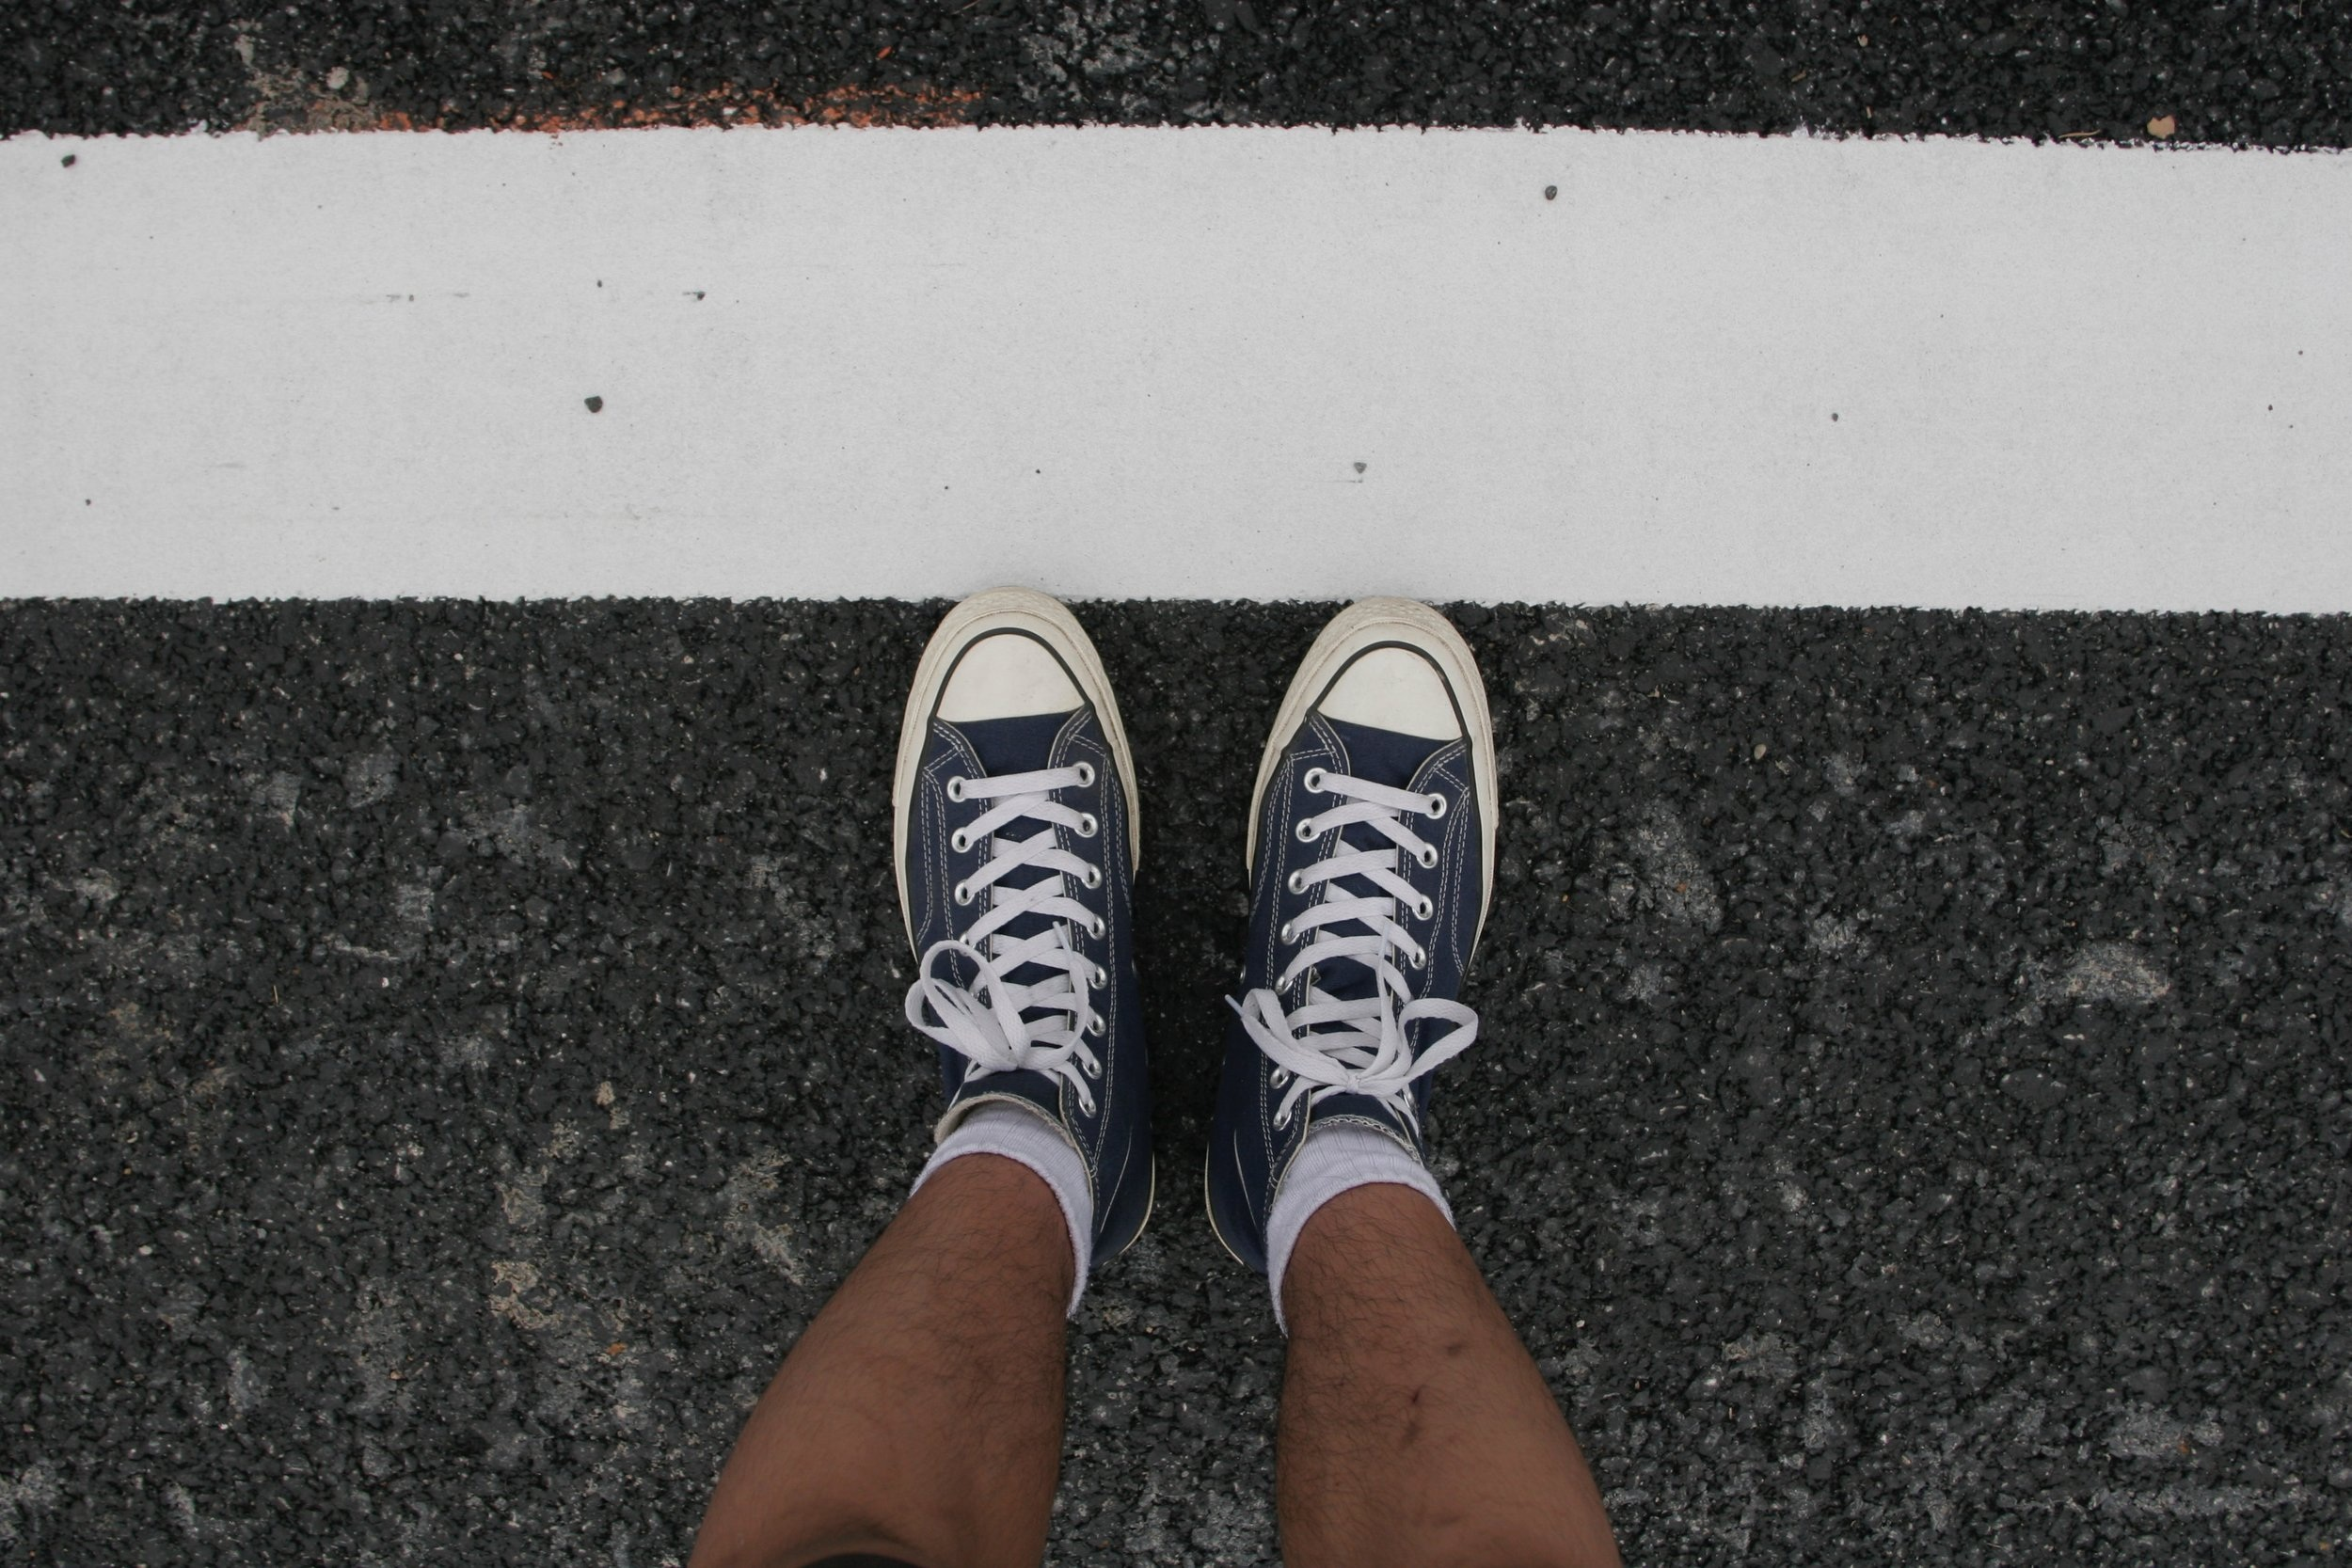 Photograph: Sneakered feet with toes touching a white painted borderline on the street.